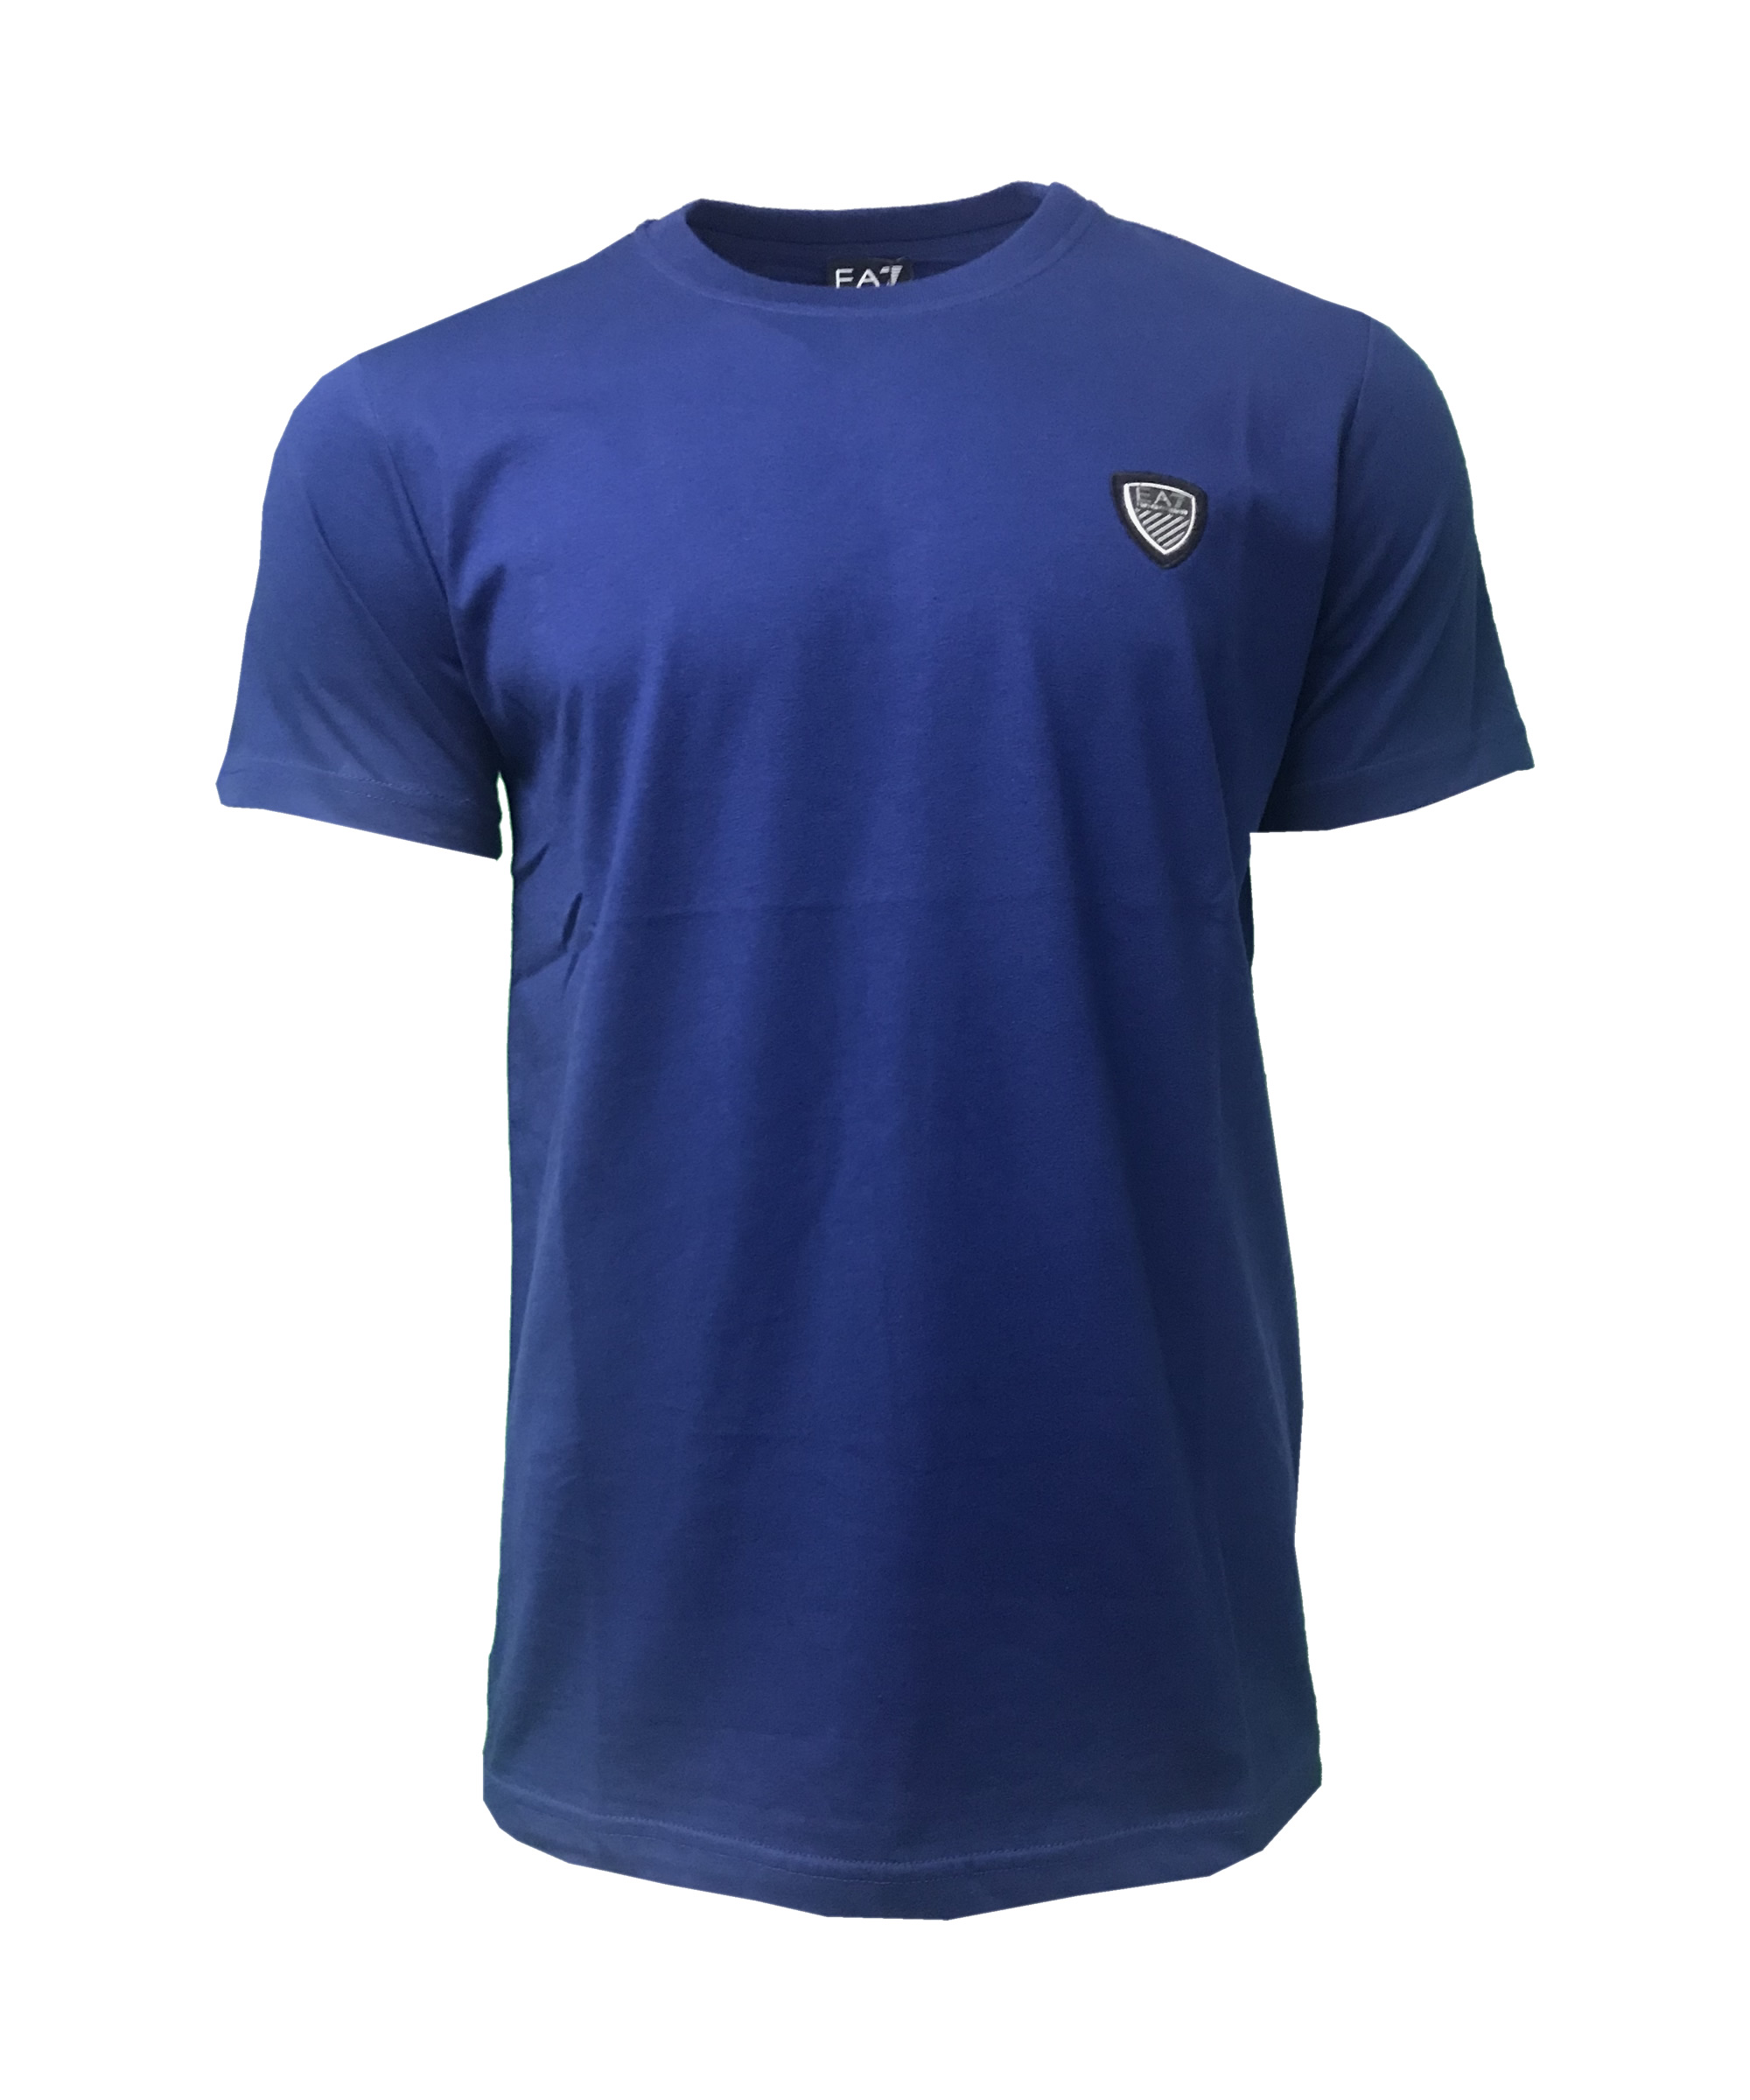 da883e3ea81 EA7 Emporio Armani Mens Crew Shield T Shirt. Short Sleeve in Indigo Blue